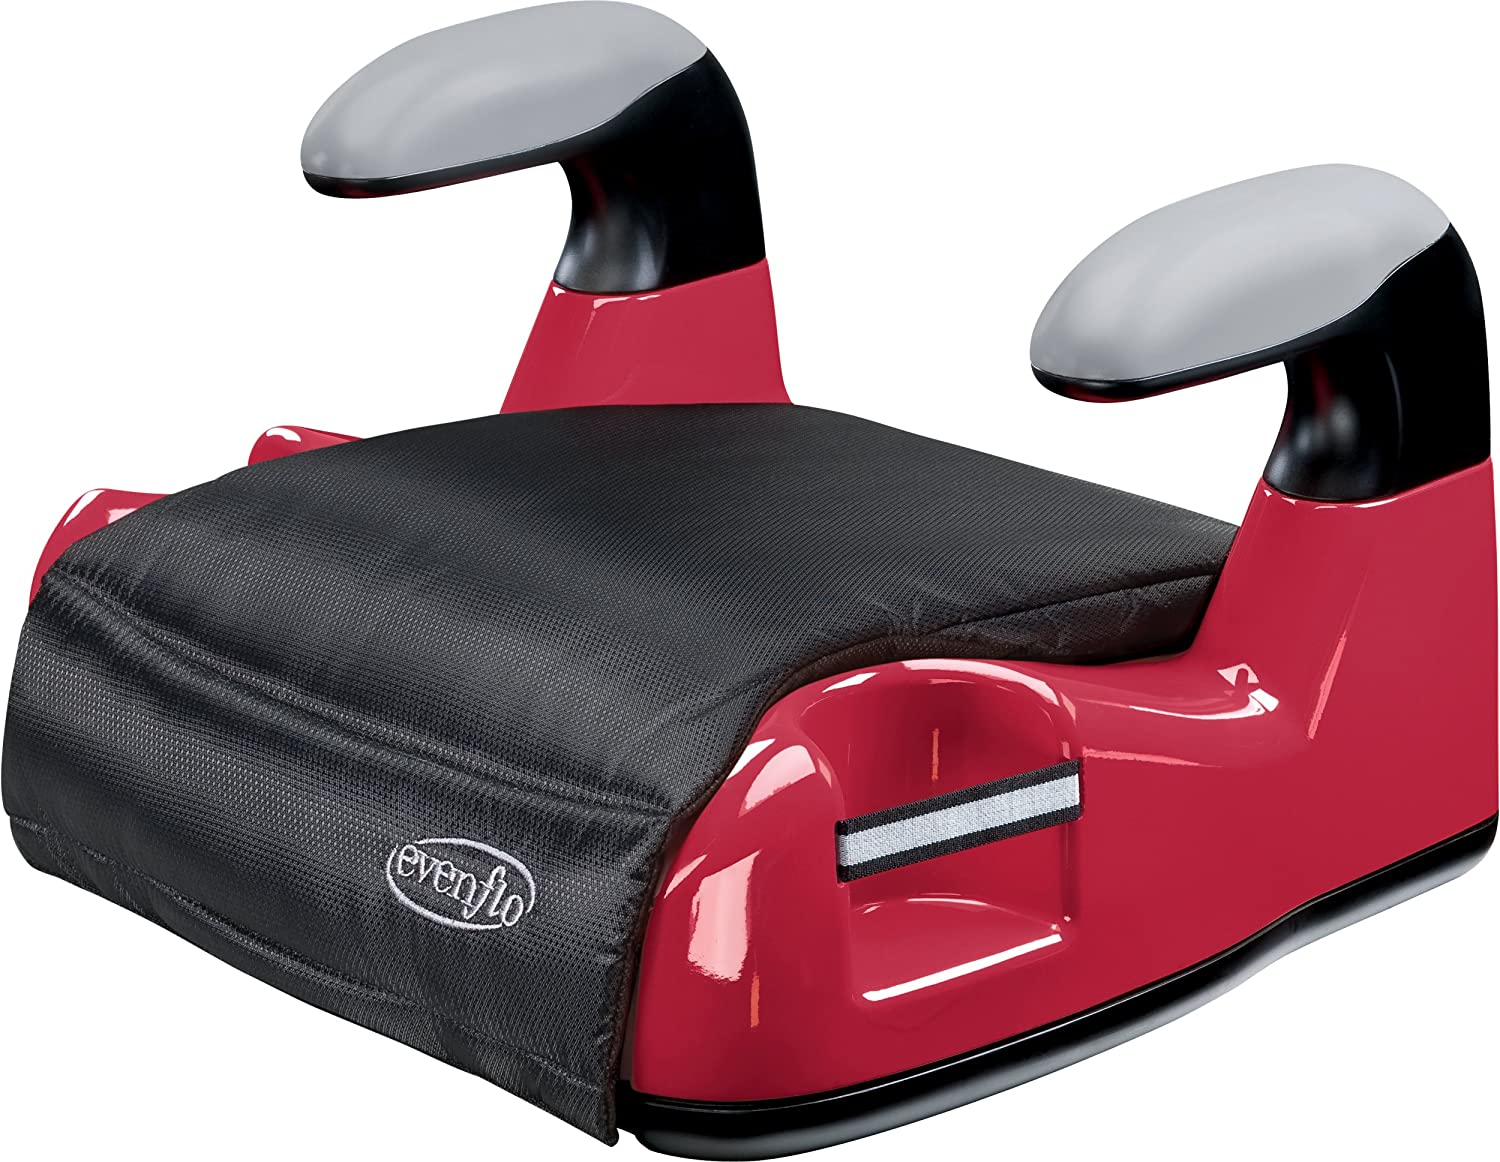 Amazon.com : Evenflo Big Kid AMP No Back Booster Car Seat, Red ...